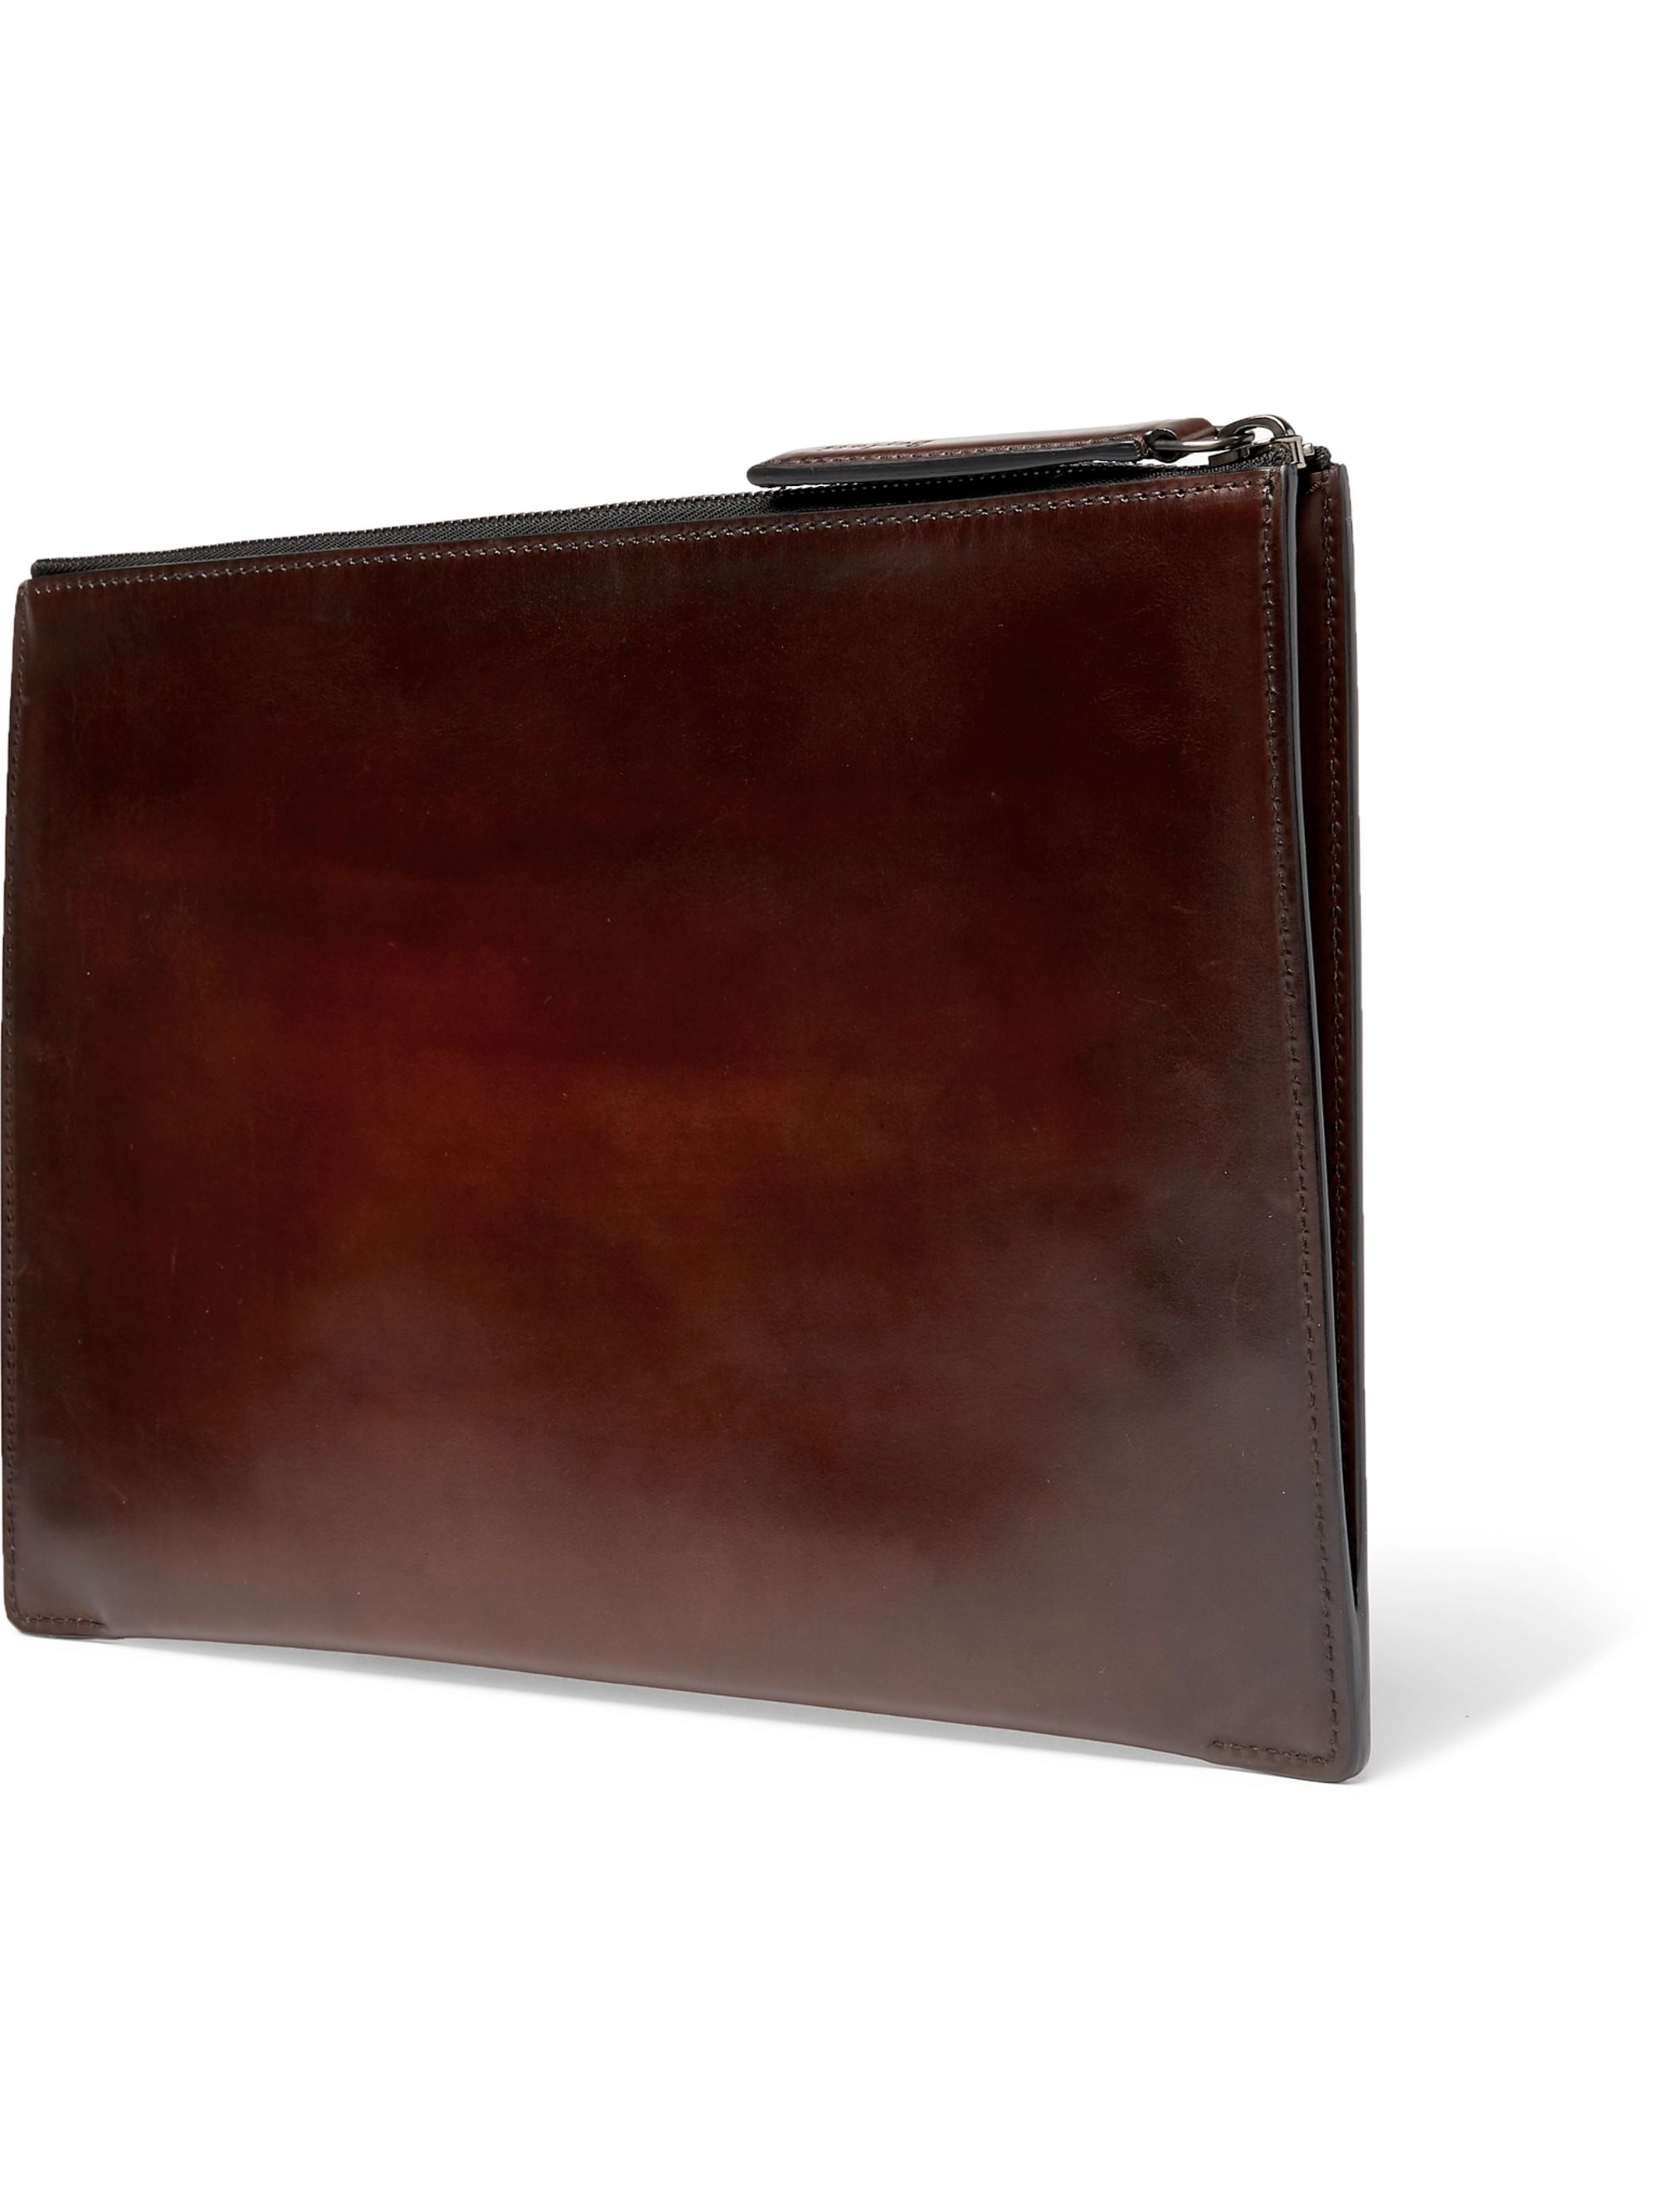 Berluti Band Leather Pouch